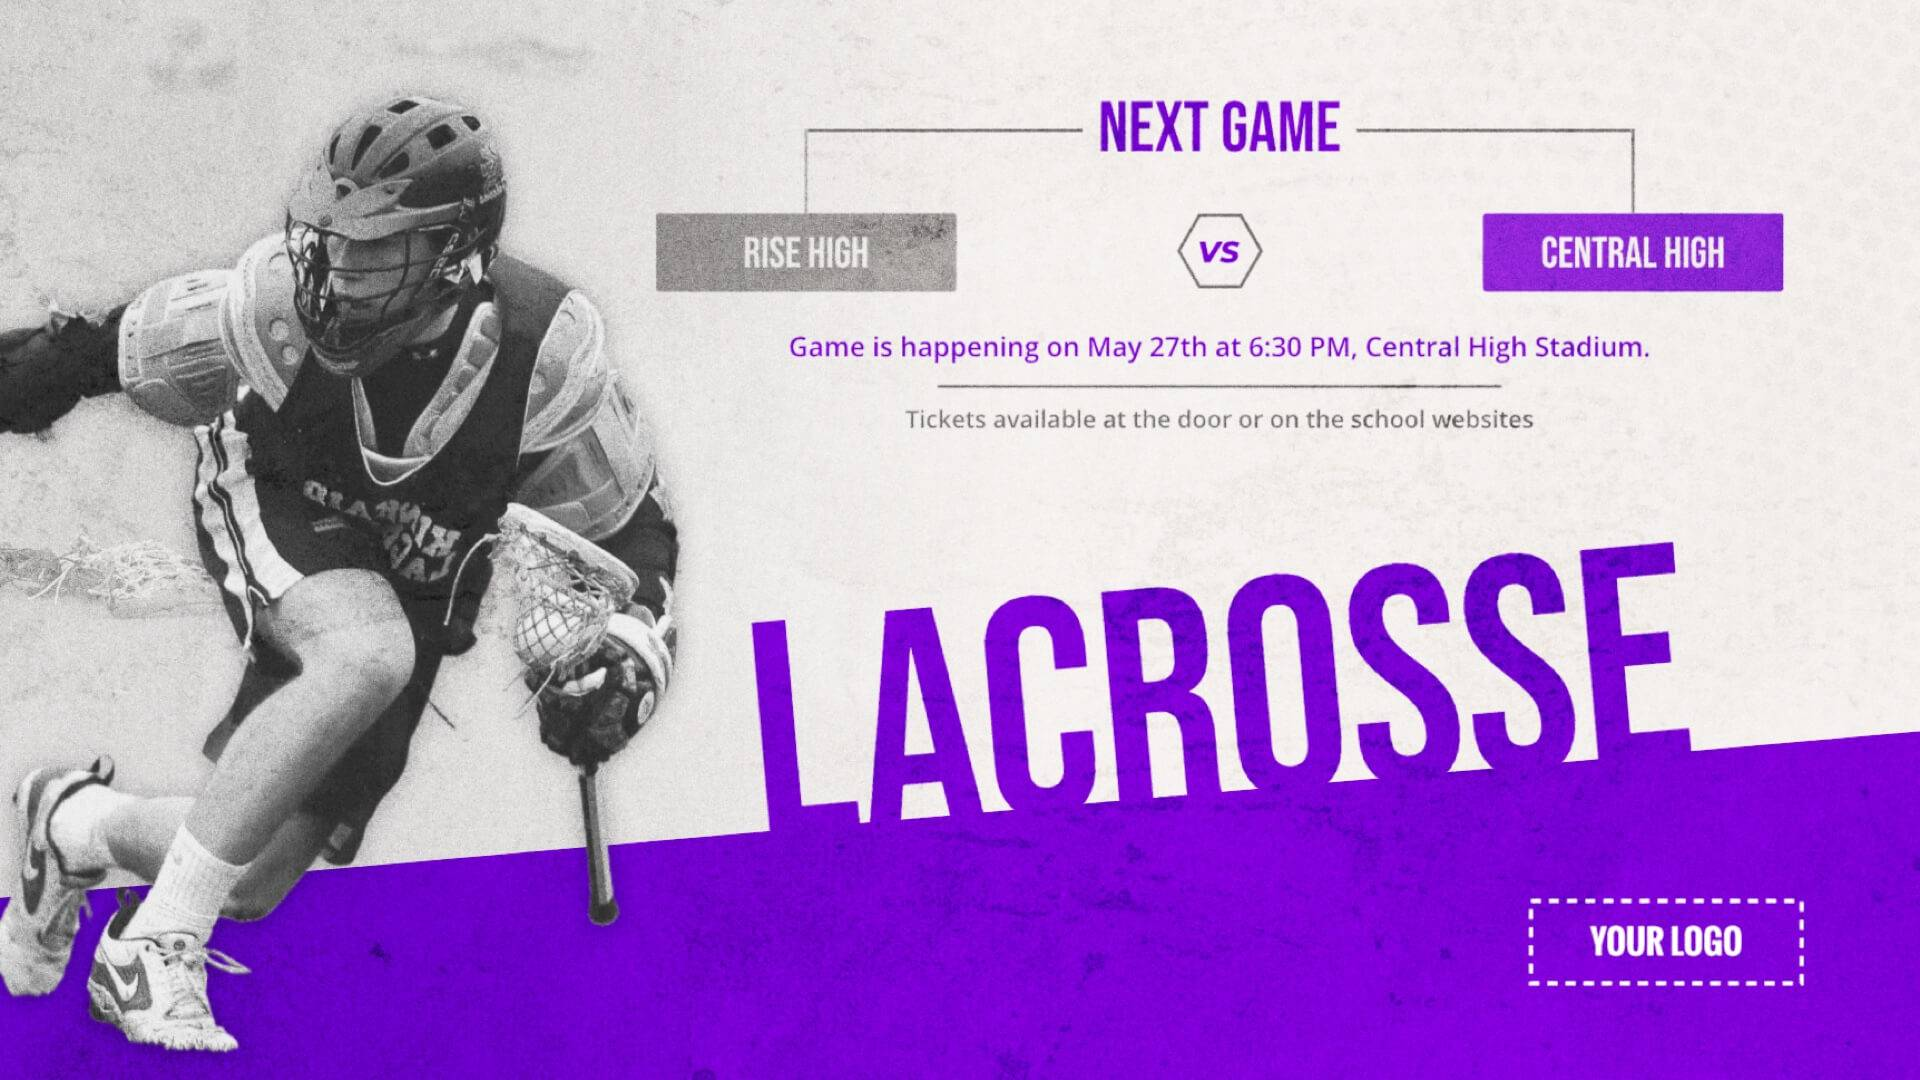 Lacrosse Game - Sports Digital Signage Template